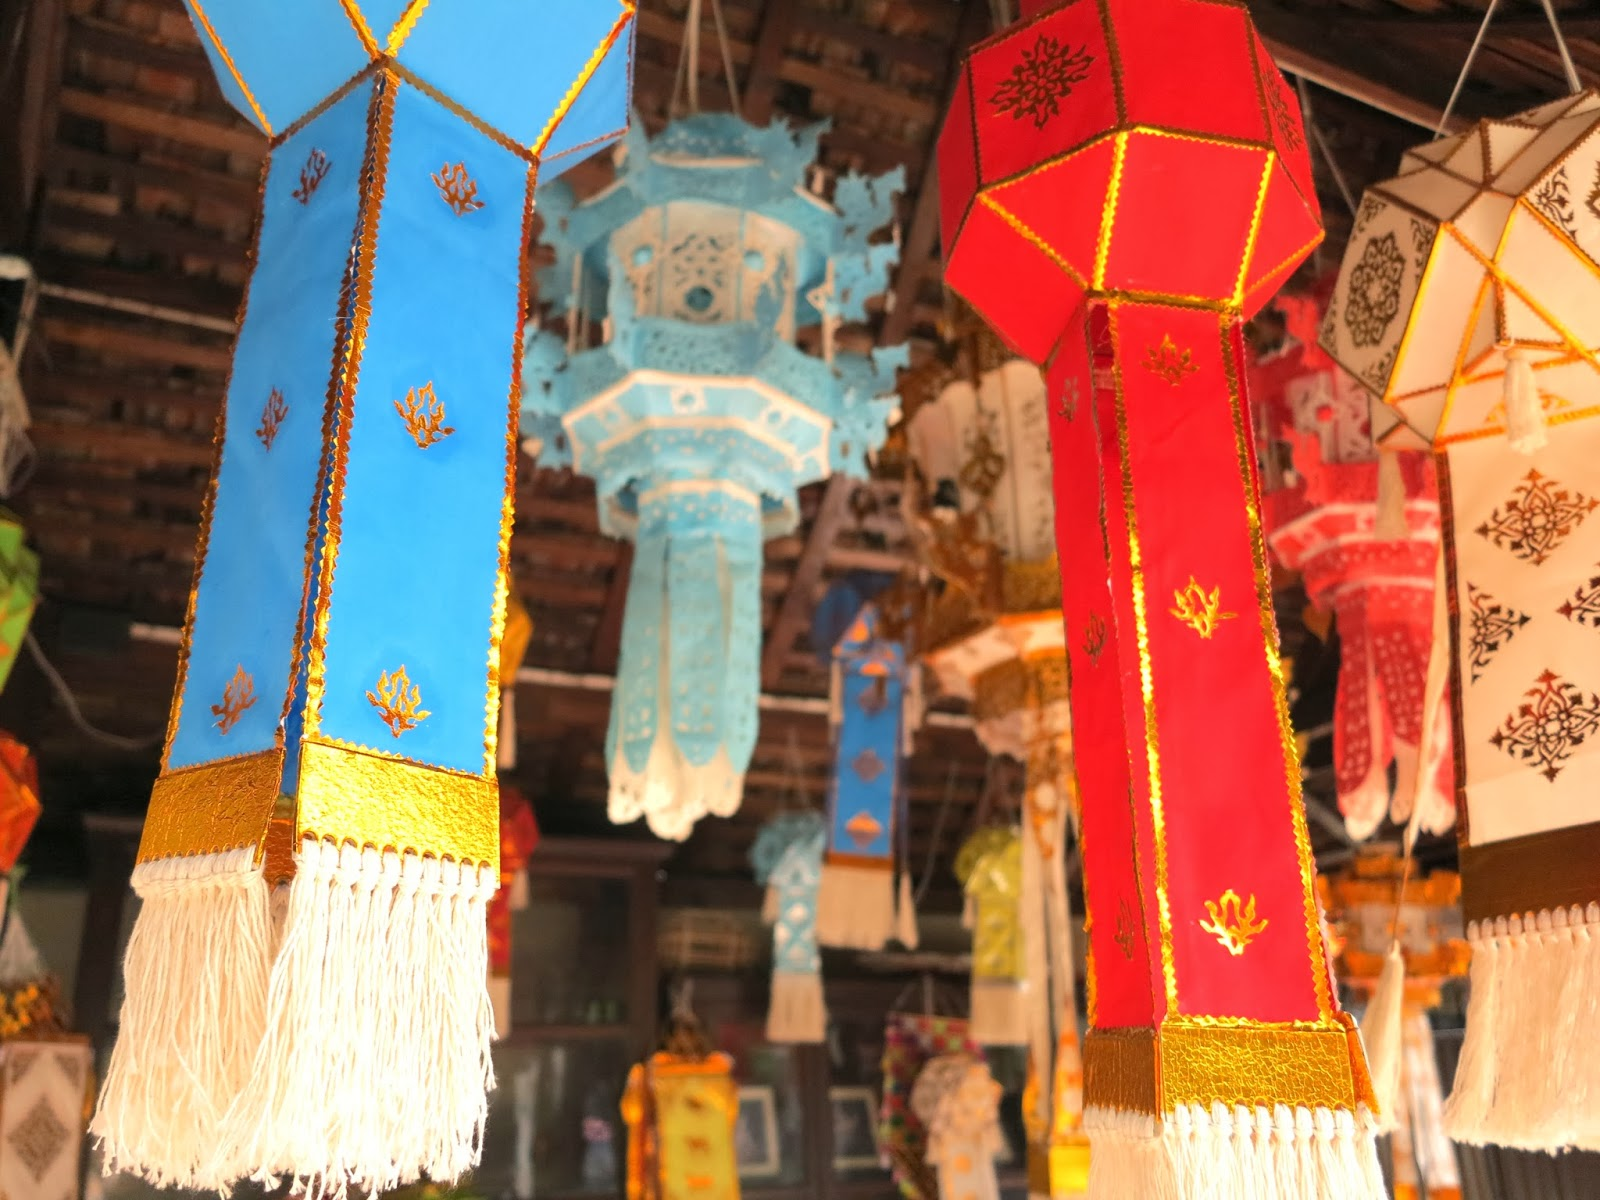 ByHaafner, colourful lanterns Thailand